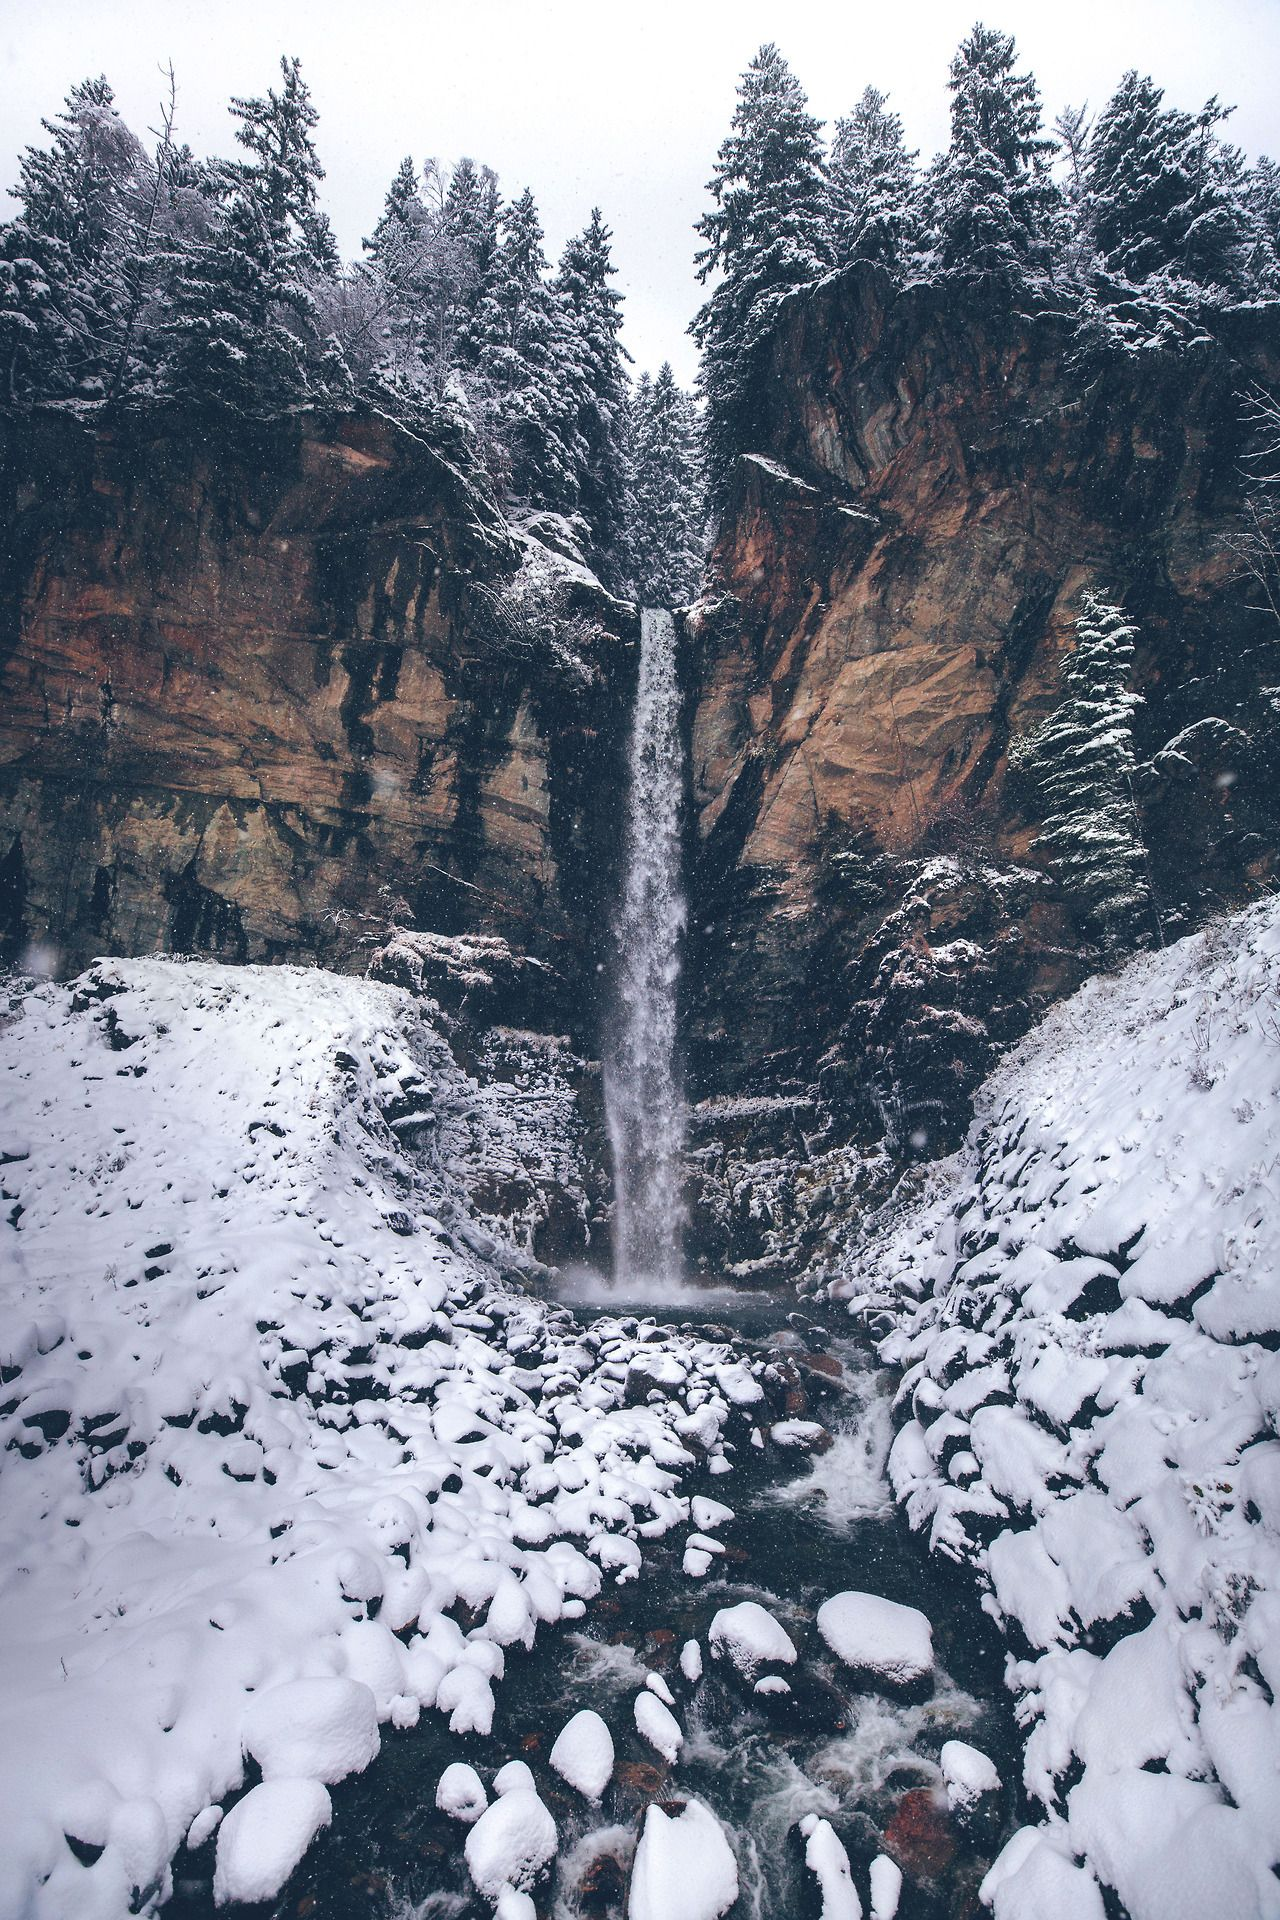 Rushing in the stillness of falling snow Austria by Denny Bitte - #artists #Austria #bitte #creek #denny #forest #hiking #landscape #nature #on #original #photographers #photography #snow #snowfall #travel #tumblr #vertical #waterfall